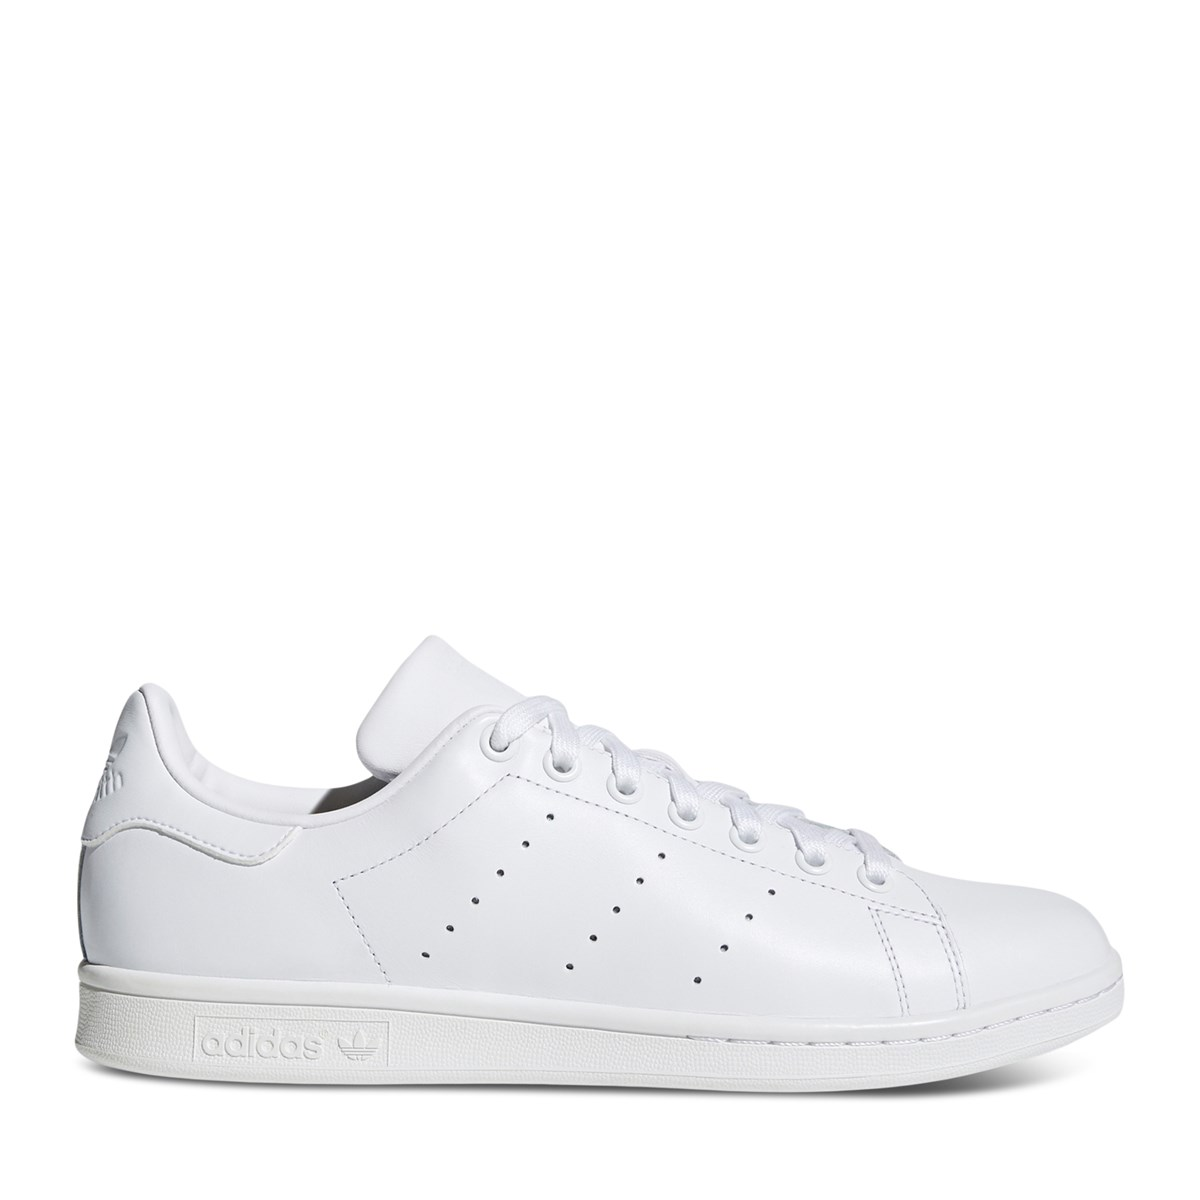 Men's Stan Smith Sneakers in White